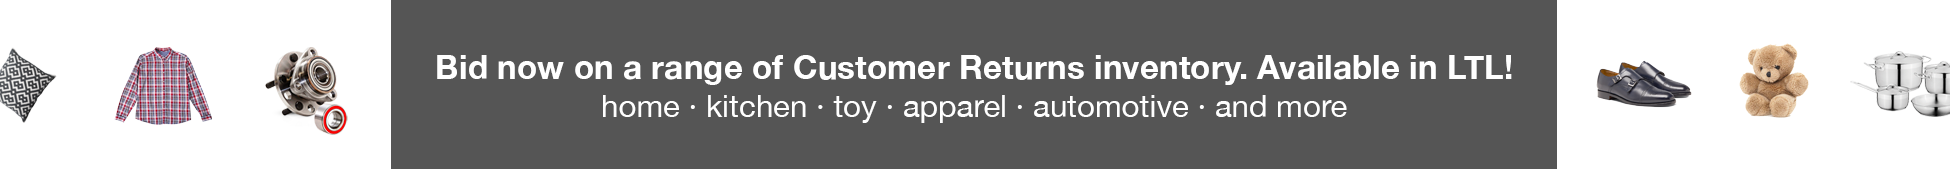 Amazon Customer Returns